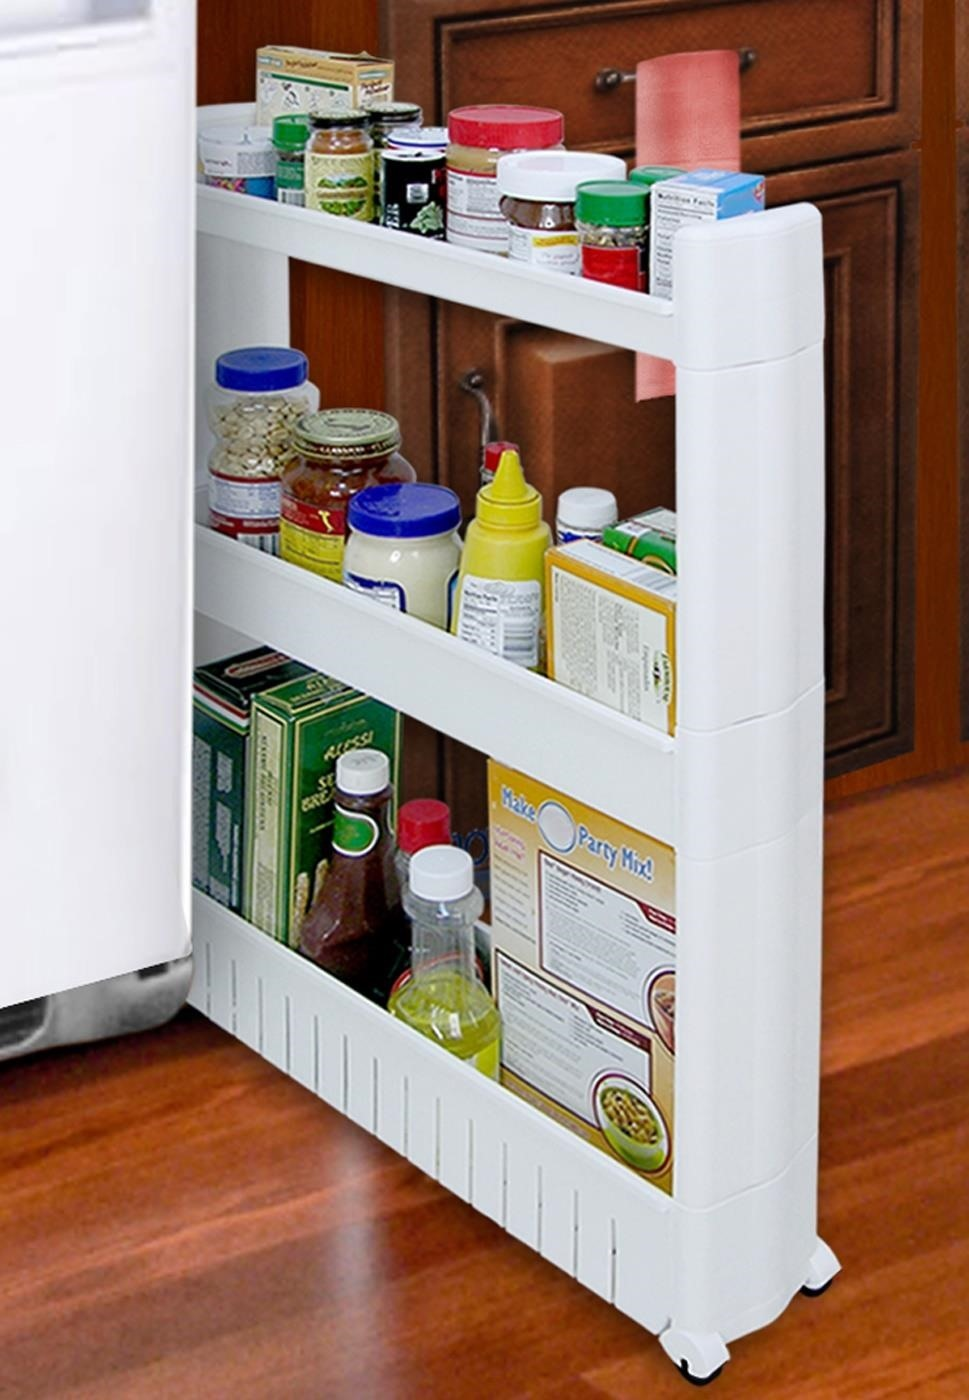 Coffee Cup Rack Under Cabinet 10 Smart Storage Hacks For Your Small Kitchen Food Hacks Daily